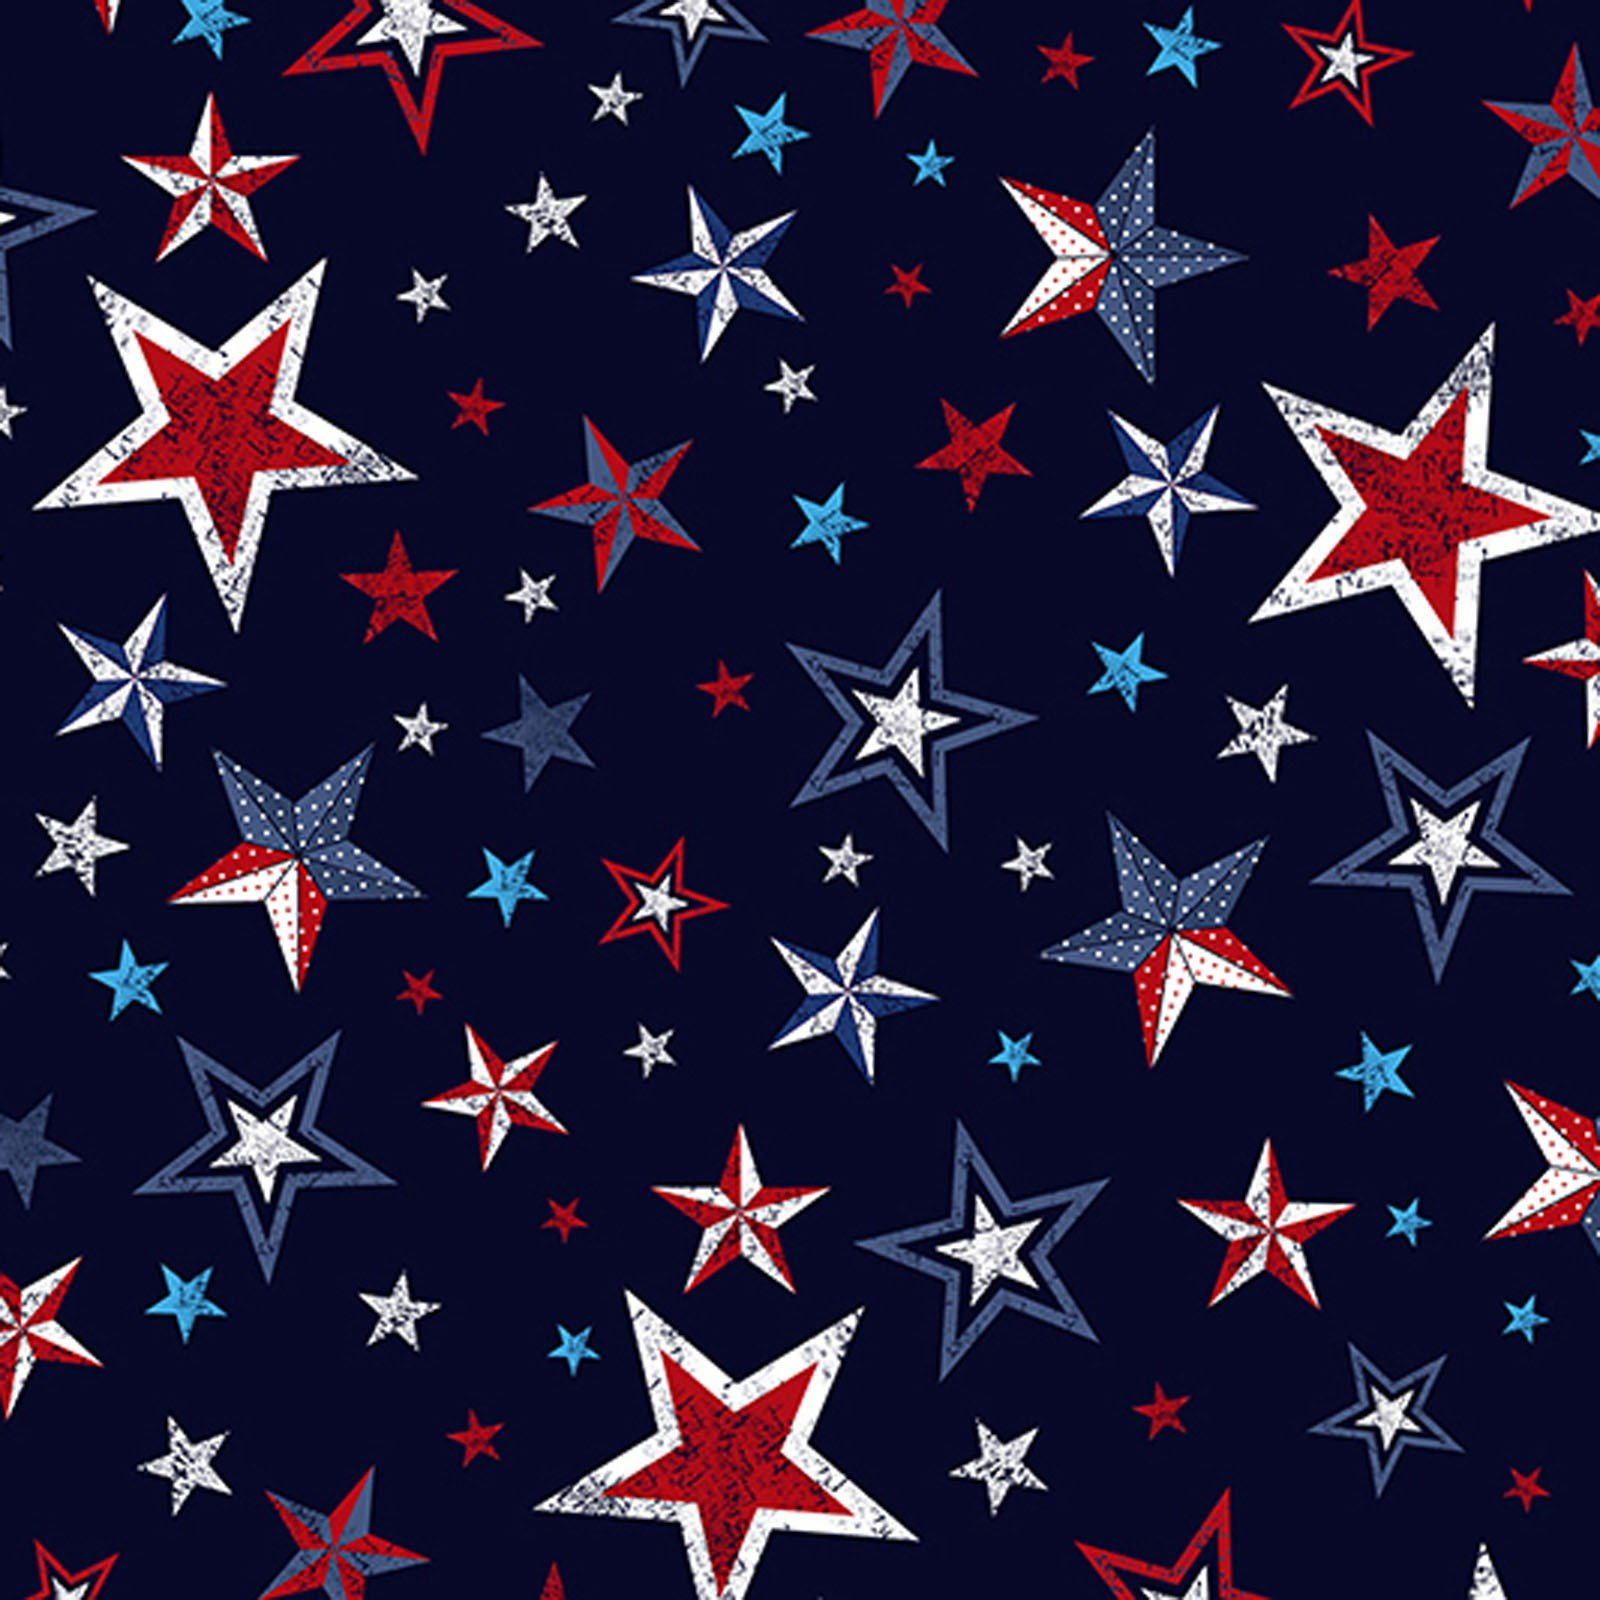 Cuddle SS Liberty Stars - 60 wide